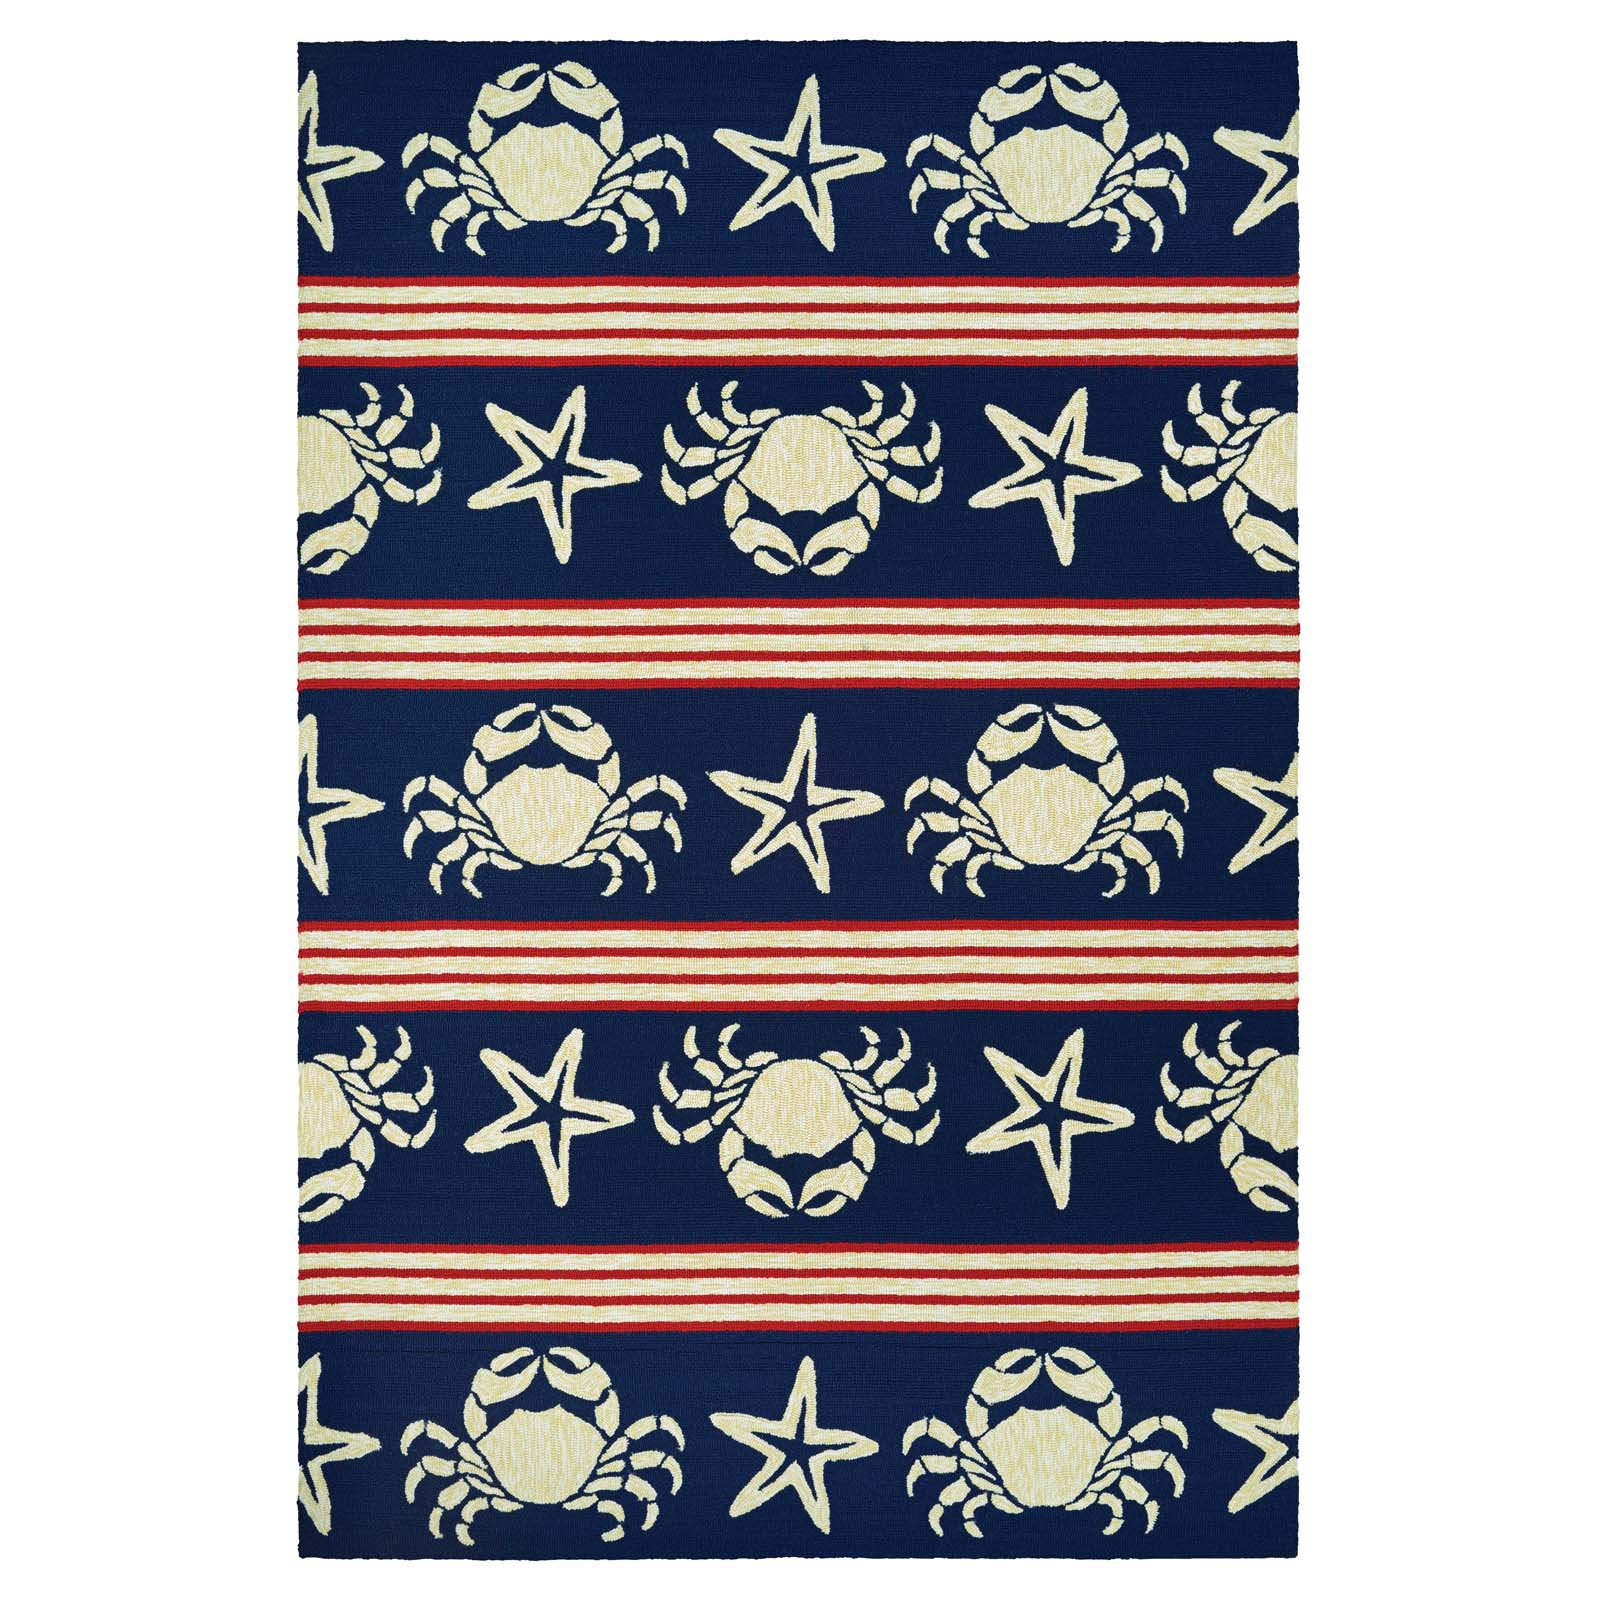 Outdoor Escape Blue Claws Navy Indoor/Outdoor Area Rug - Multiple Sizes